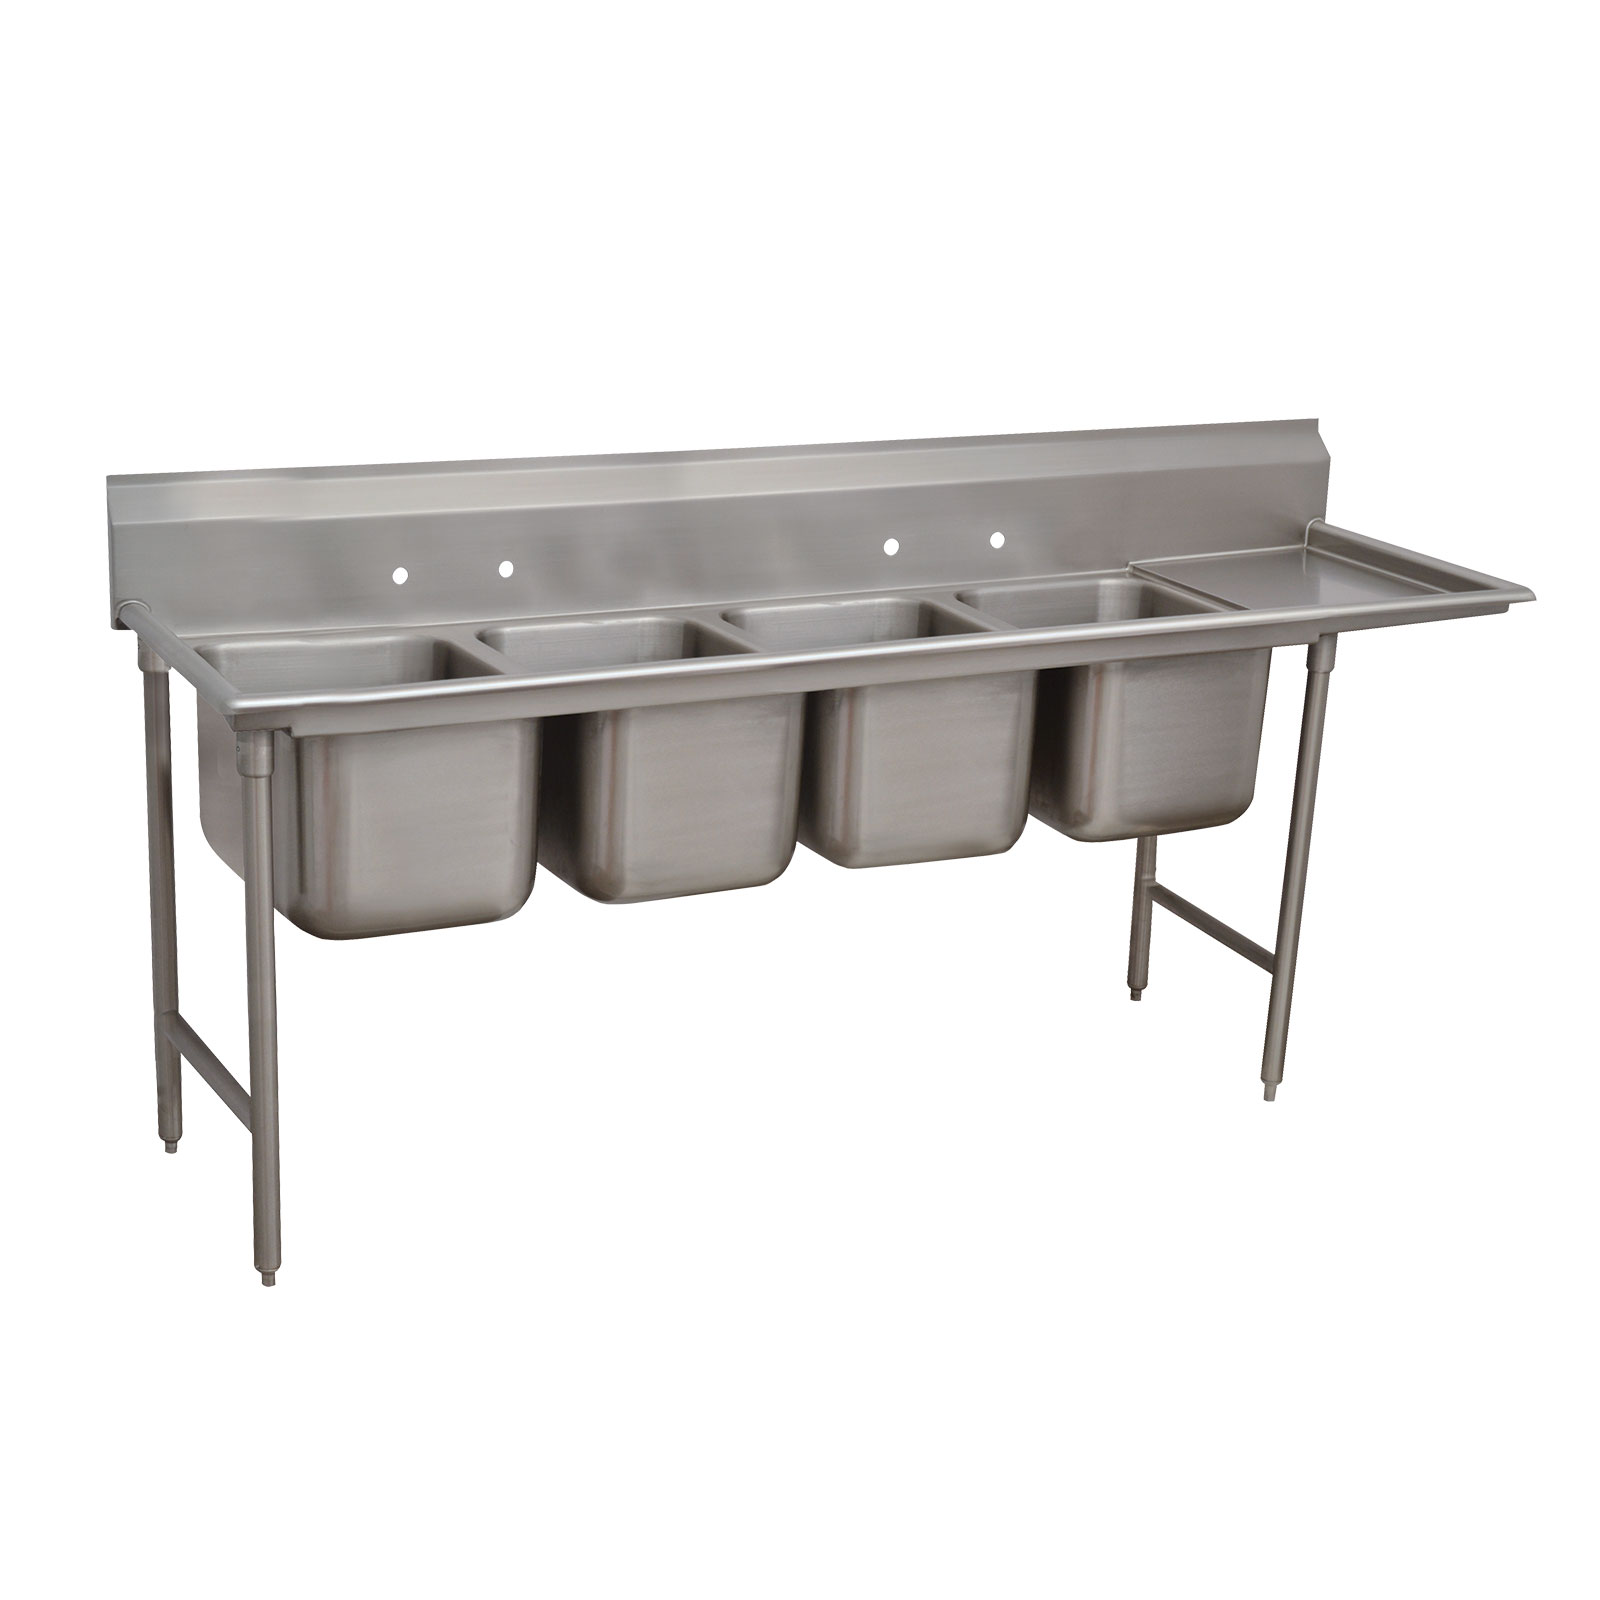 Advance Tabco 9-4-72-18R sink, (4) four compartment